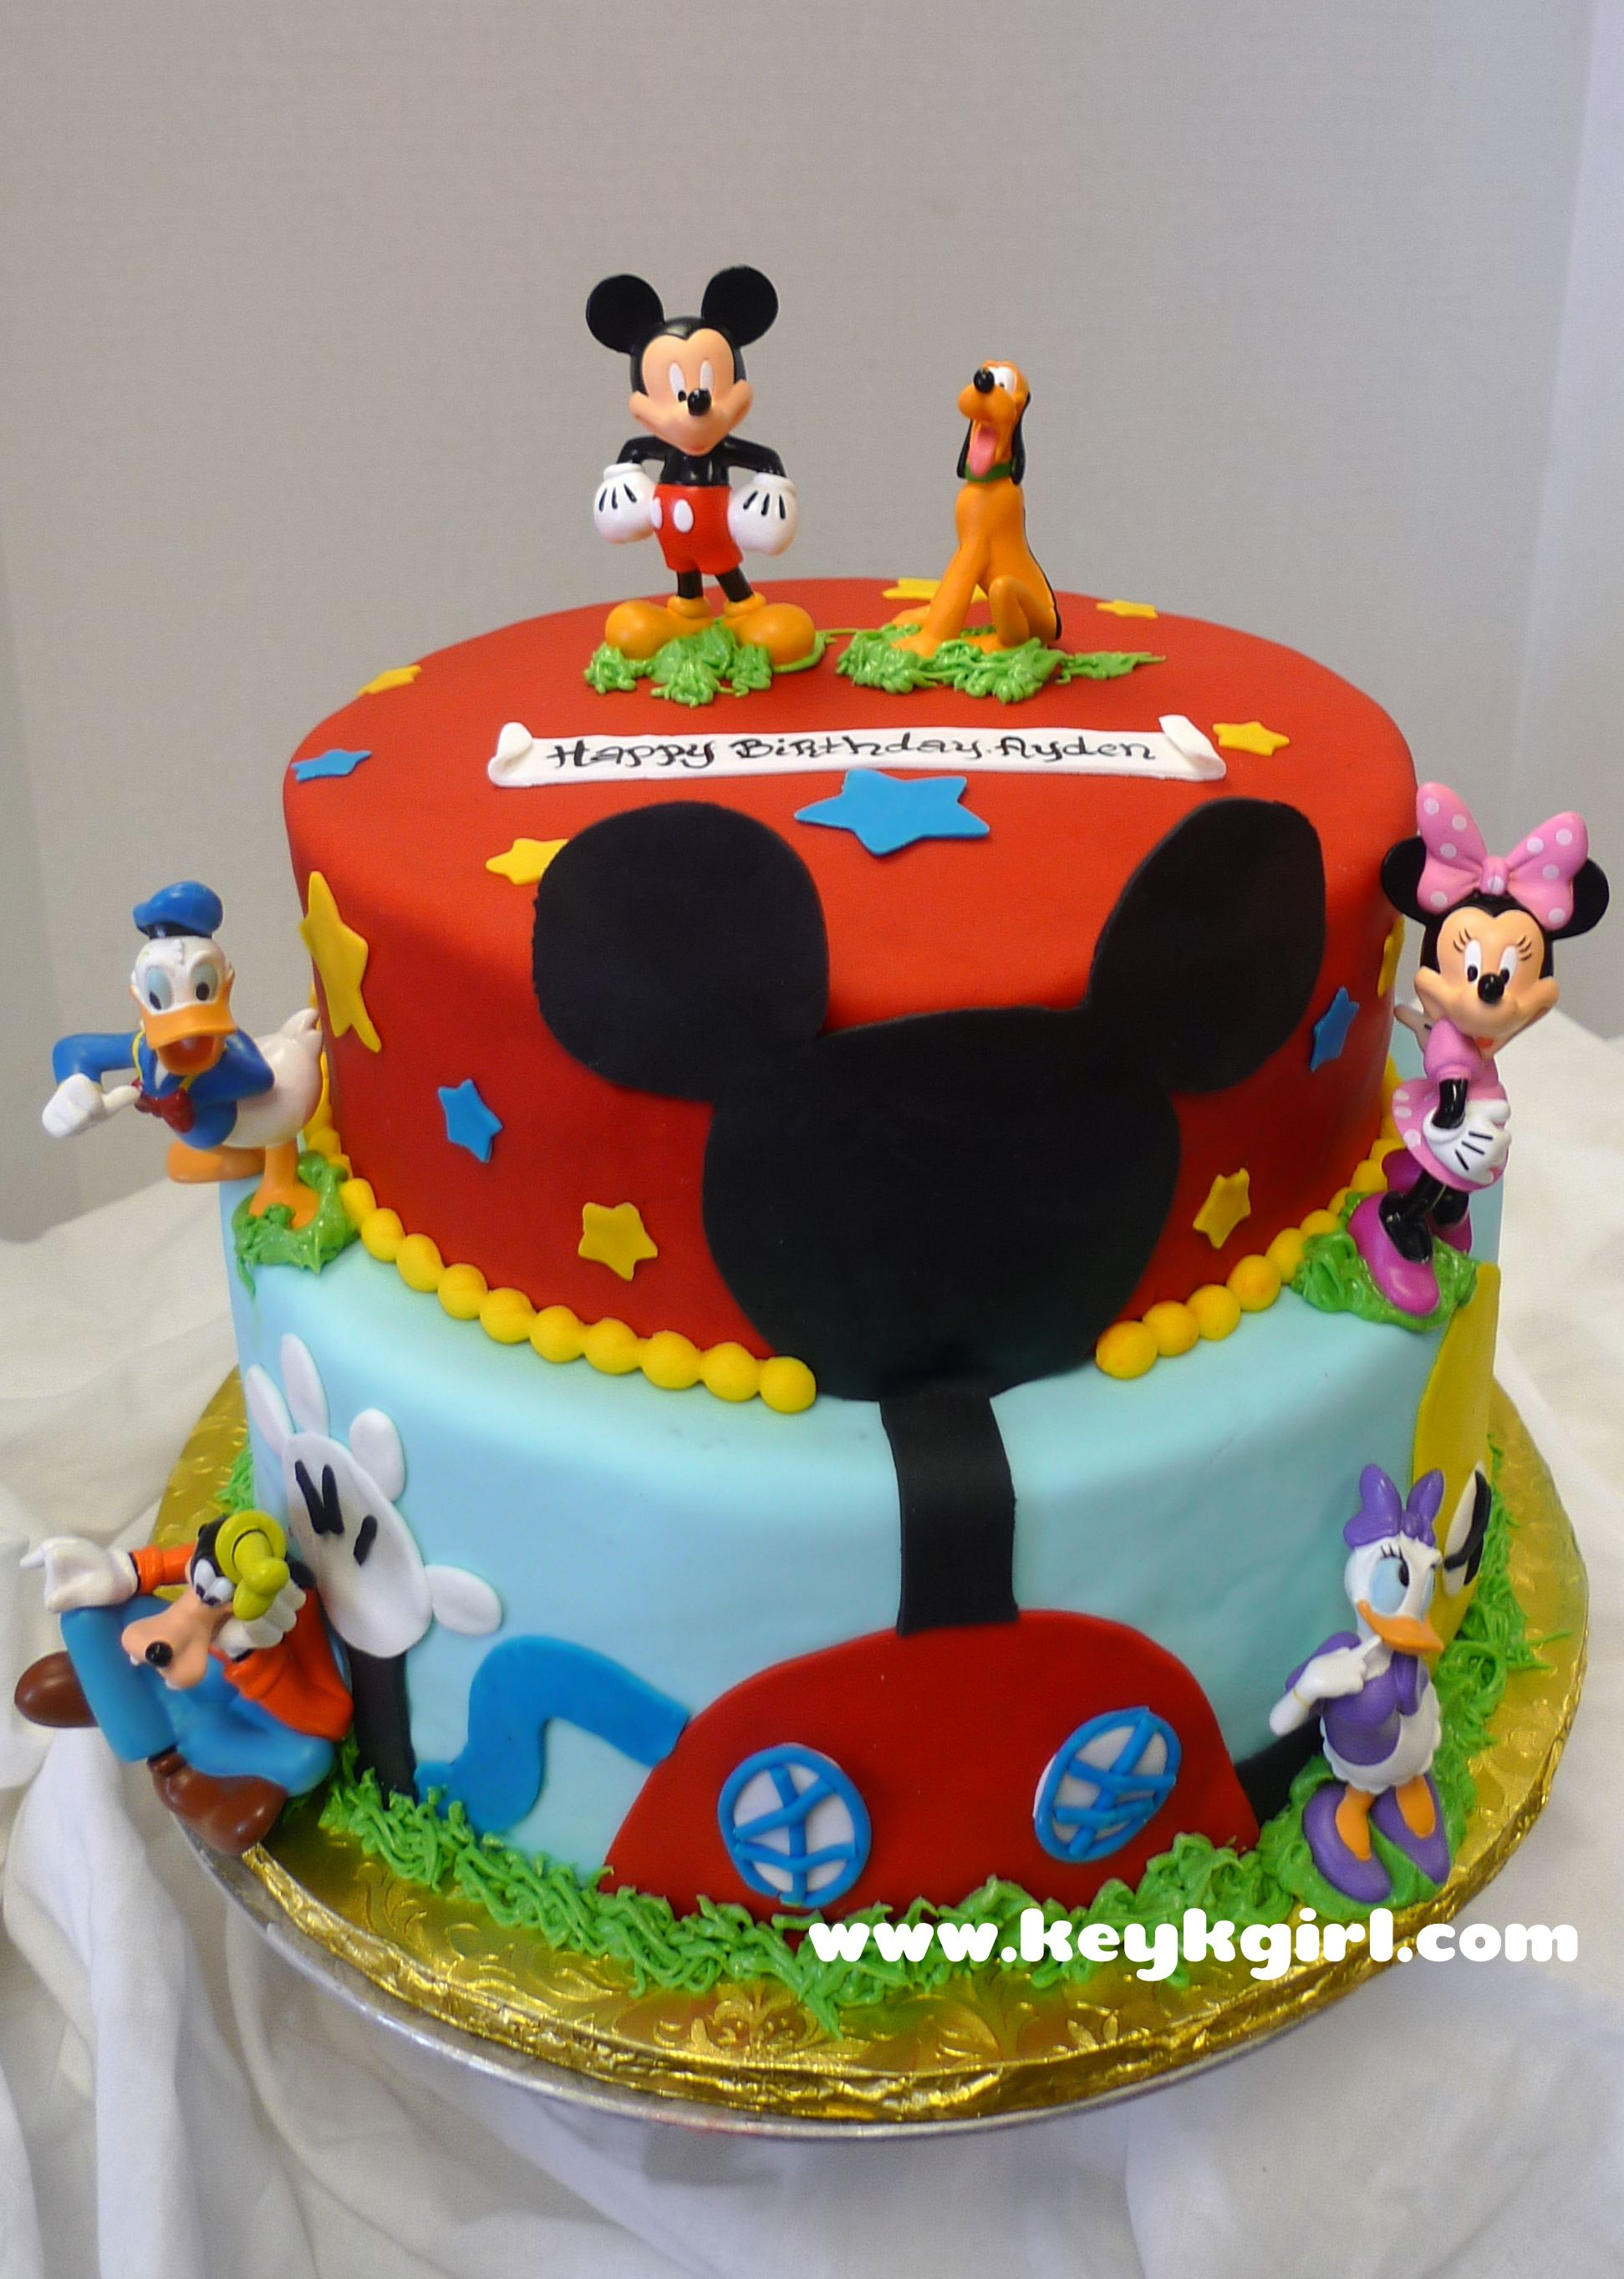 Mickey Mouse Clubhouse Cake By Admin Published June 20